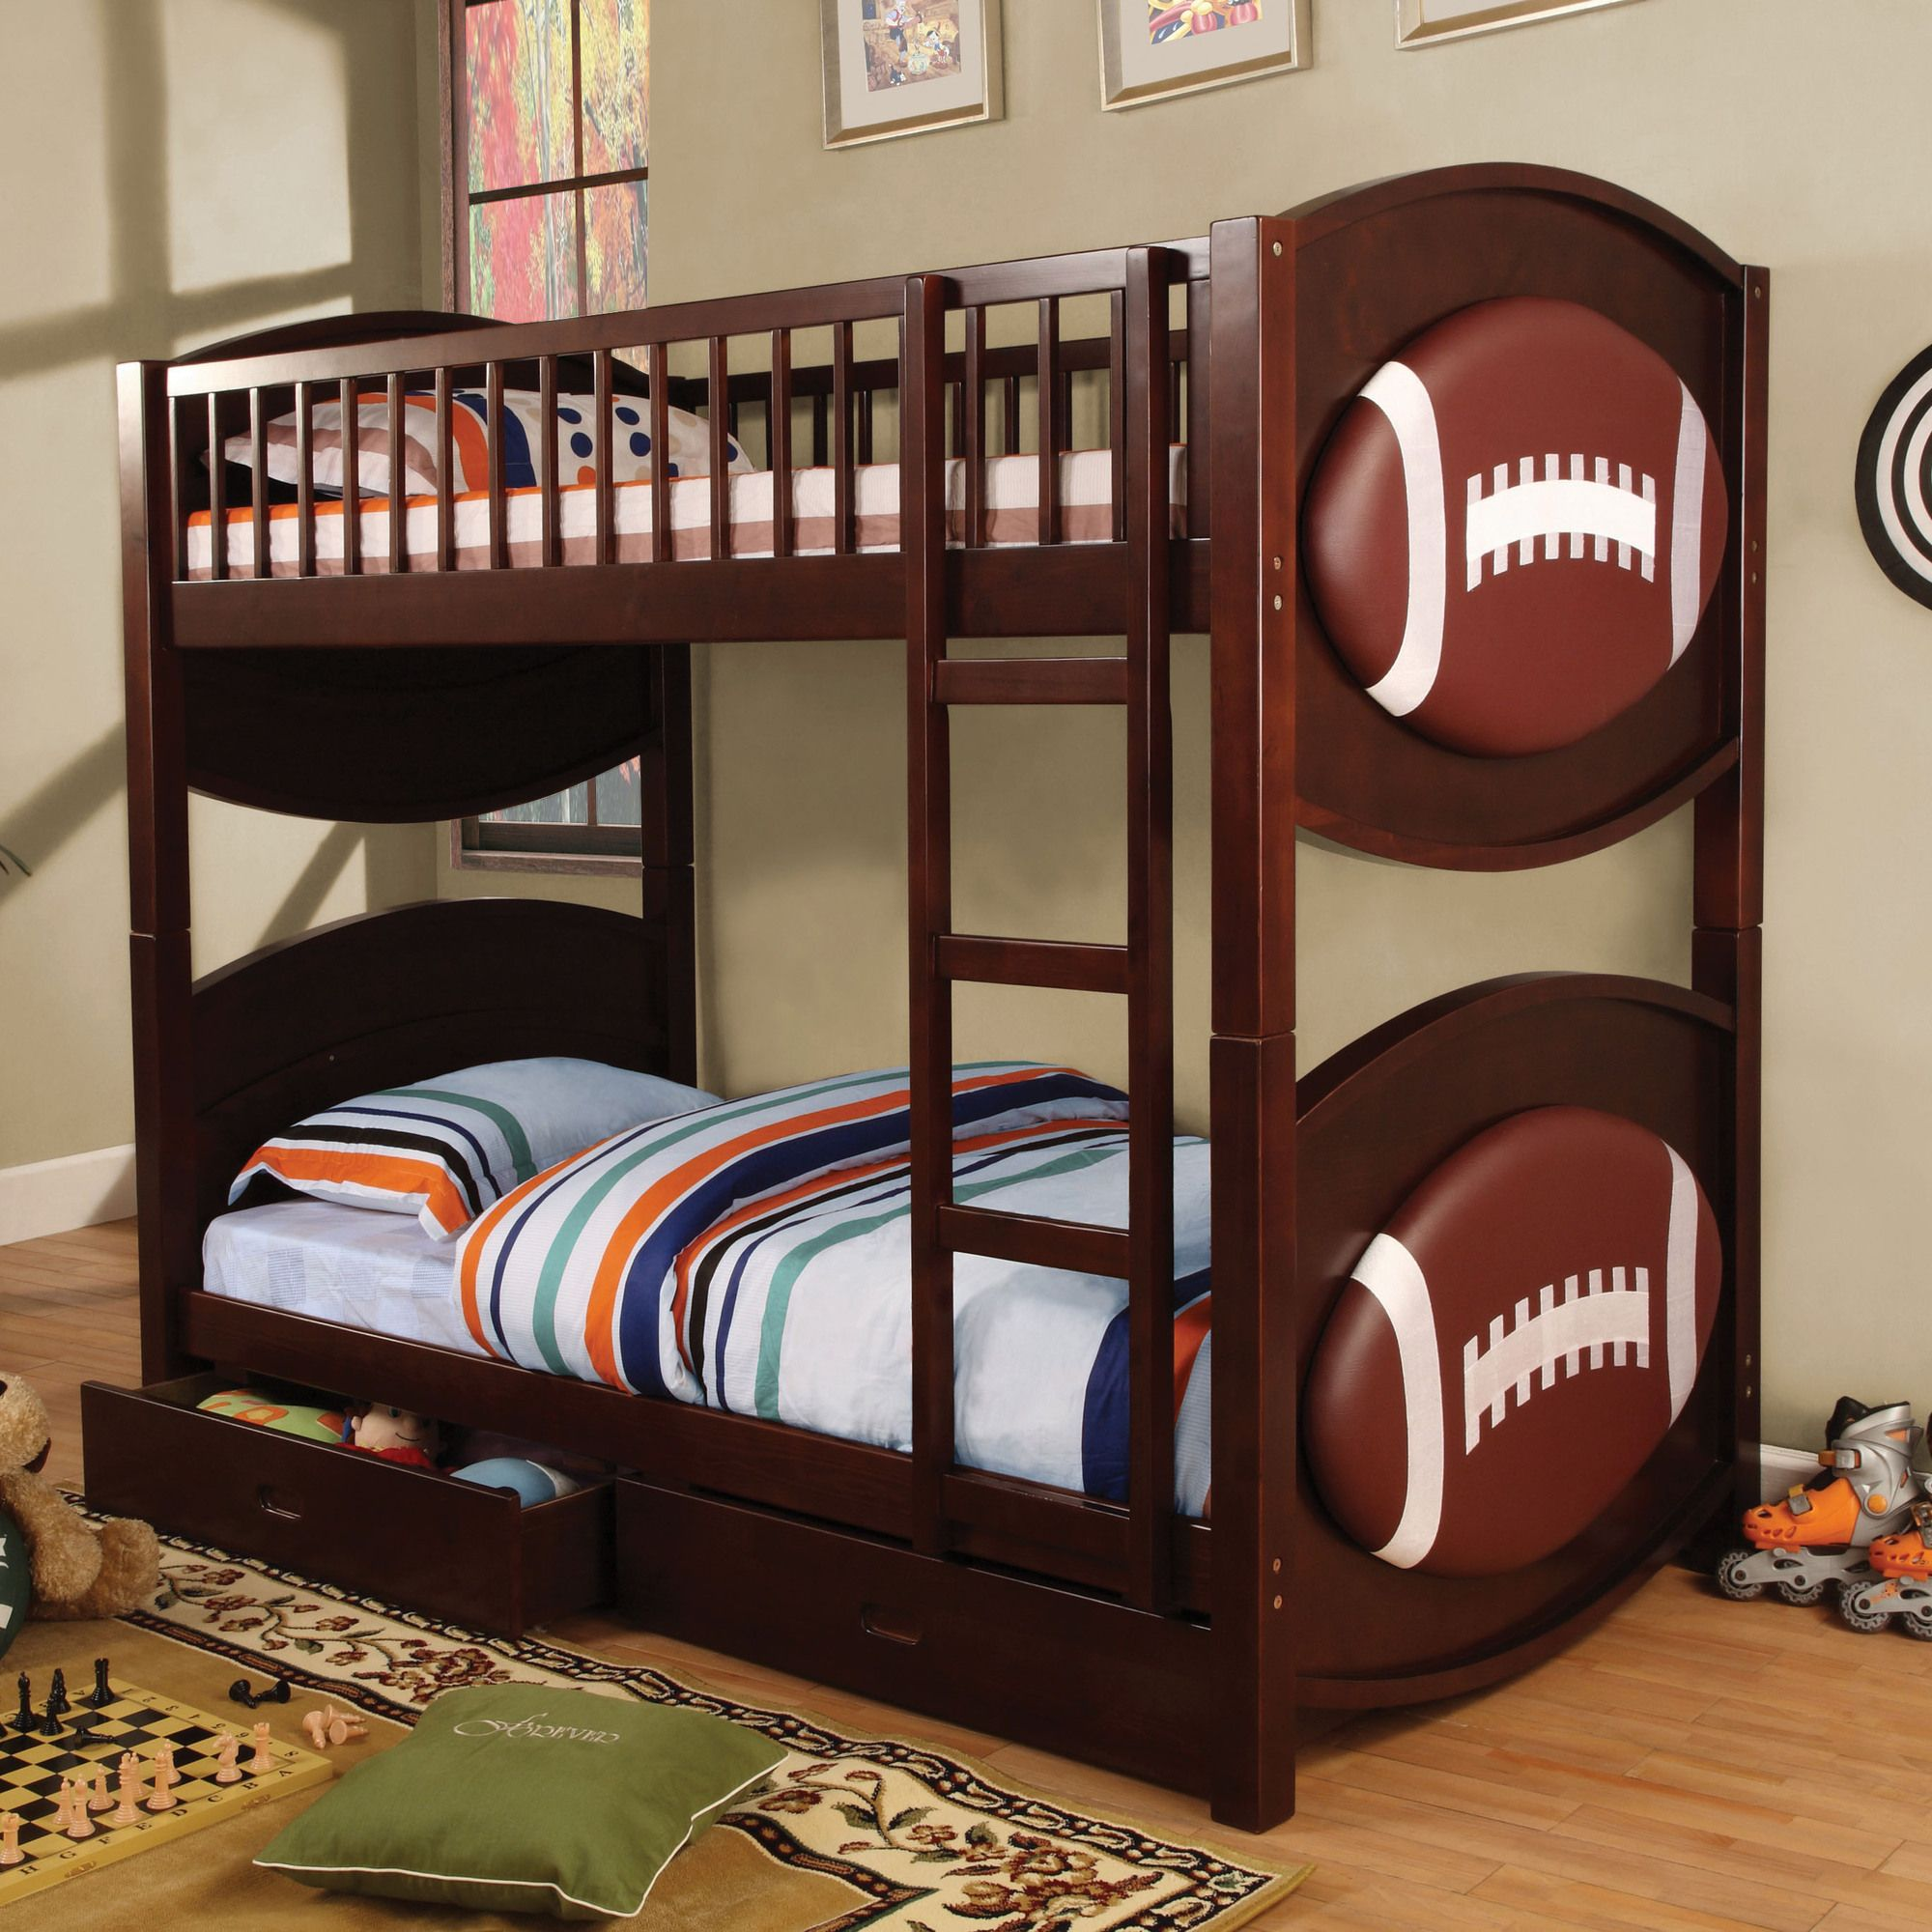 of and toddler pictures football bedroom blaze bedding ideas literarywondrous the monster themed kids full size concept machines sports